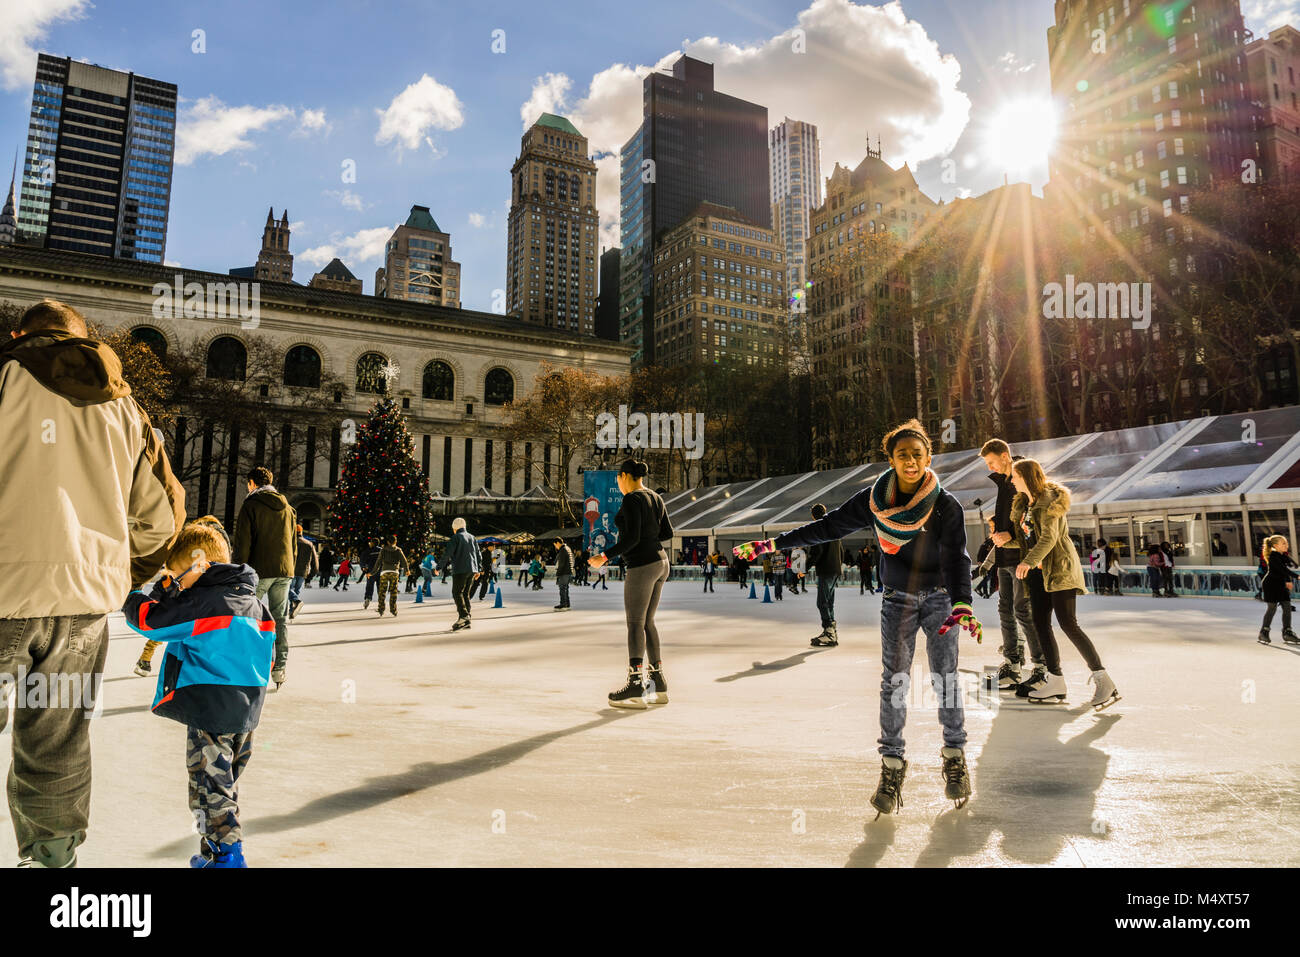 Skating Parks Stock Photos & Skating Parks Stock Images - Alamy